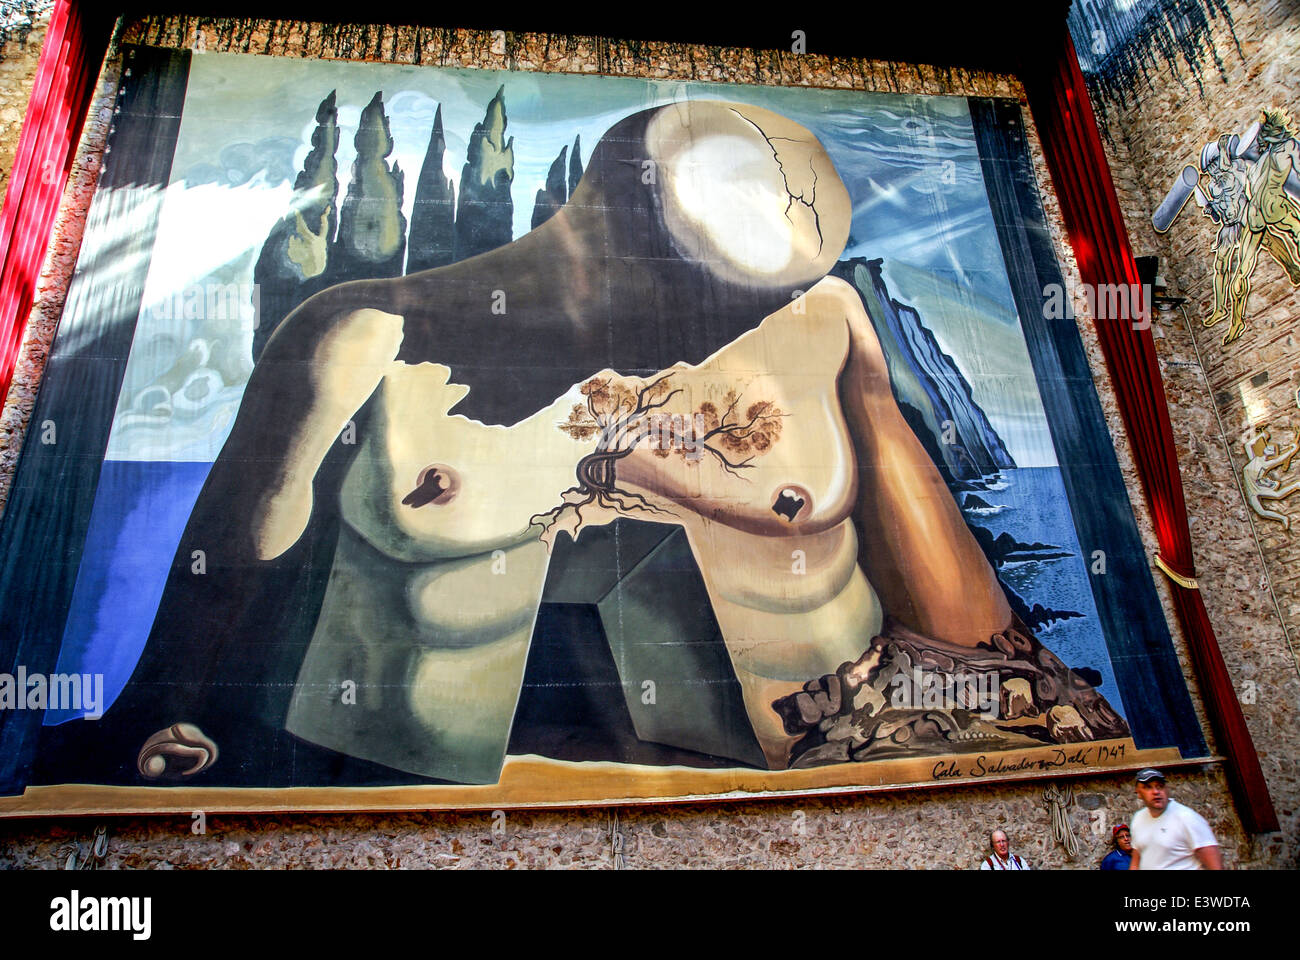 Dalí Theatre and Museum, Figueres, in Catalonia, Spain. - Stock Image